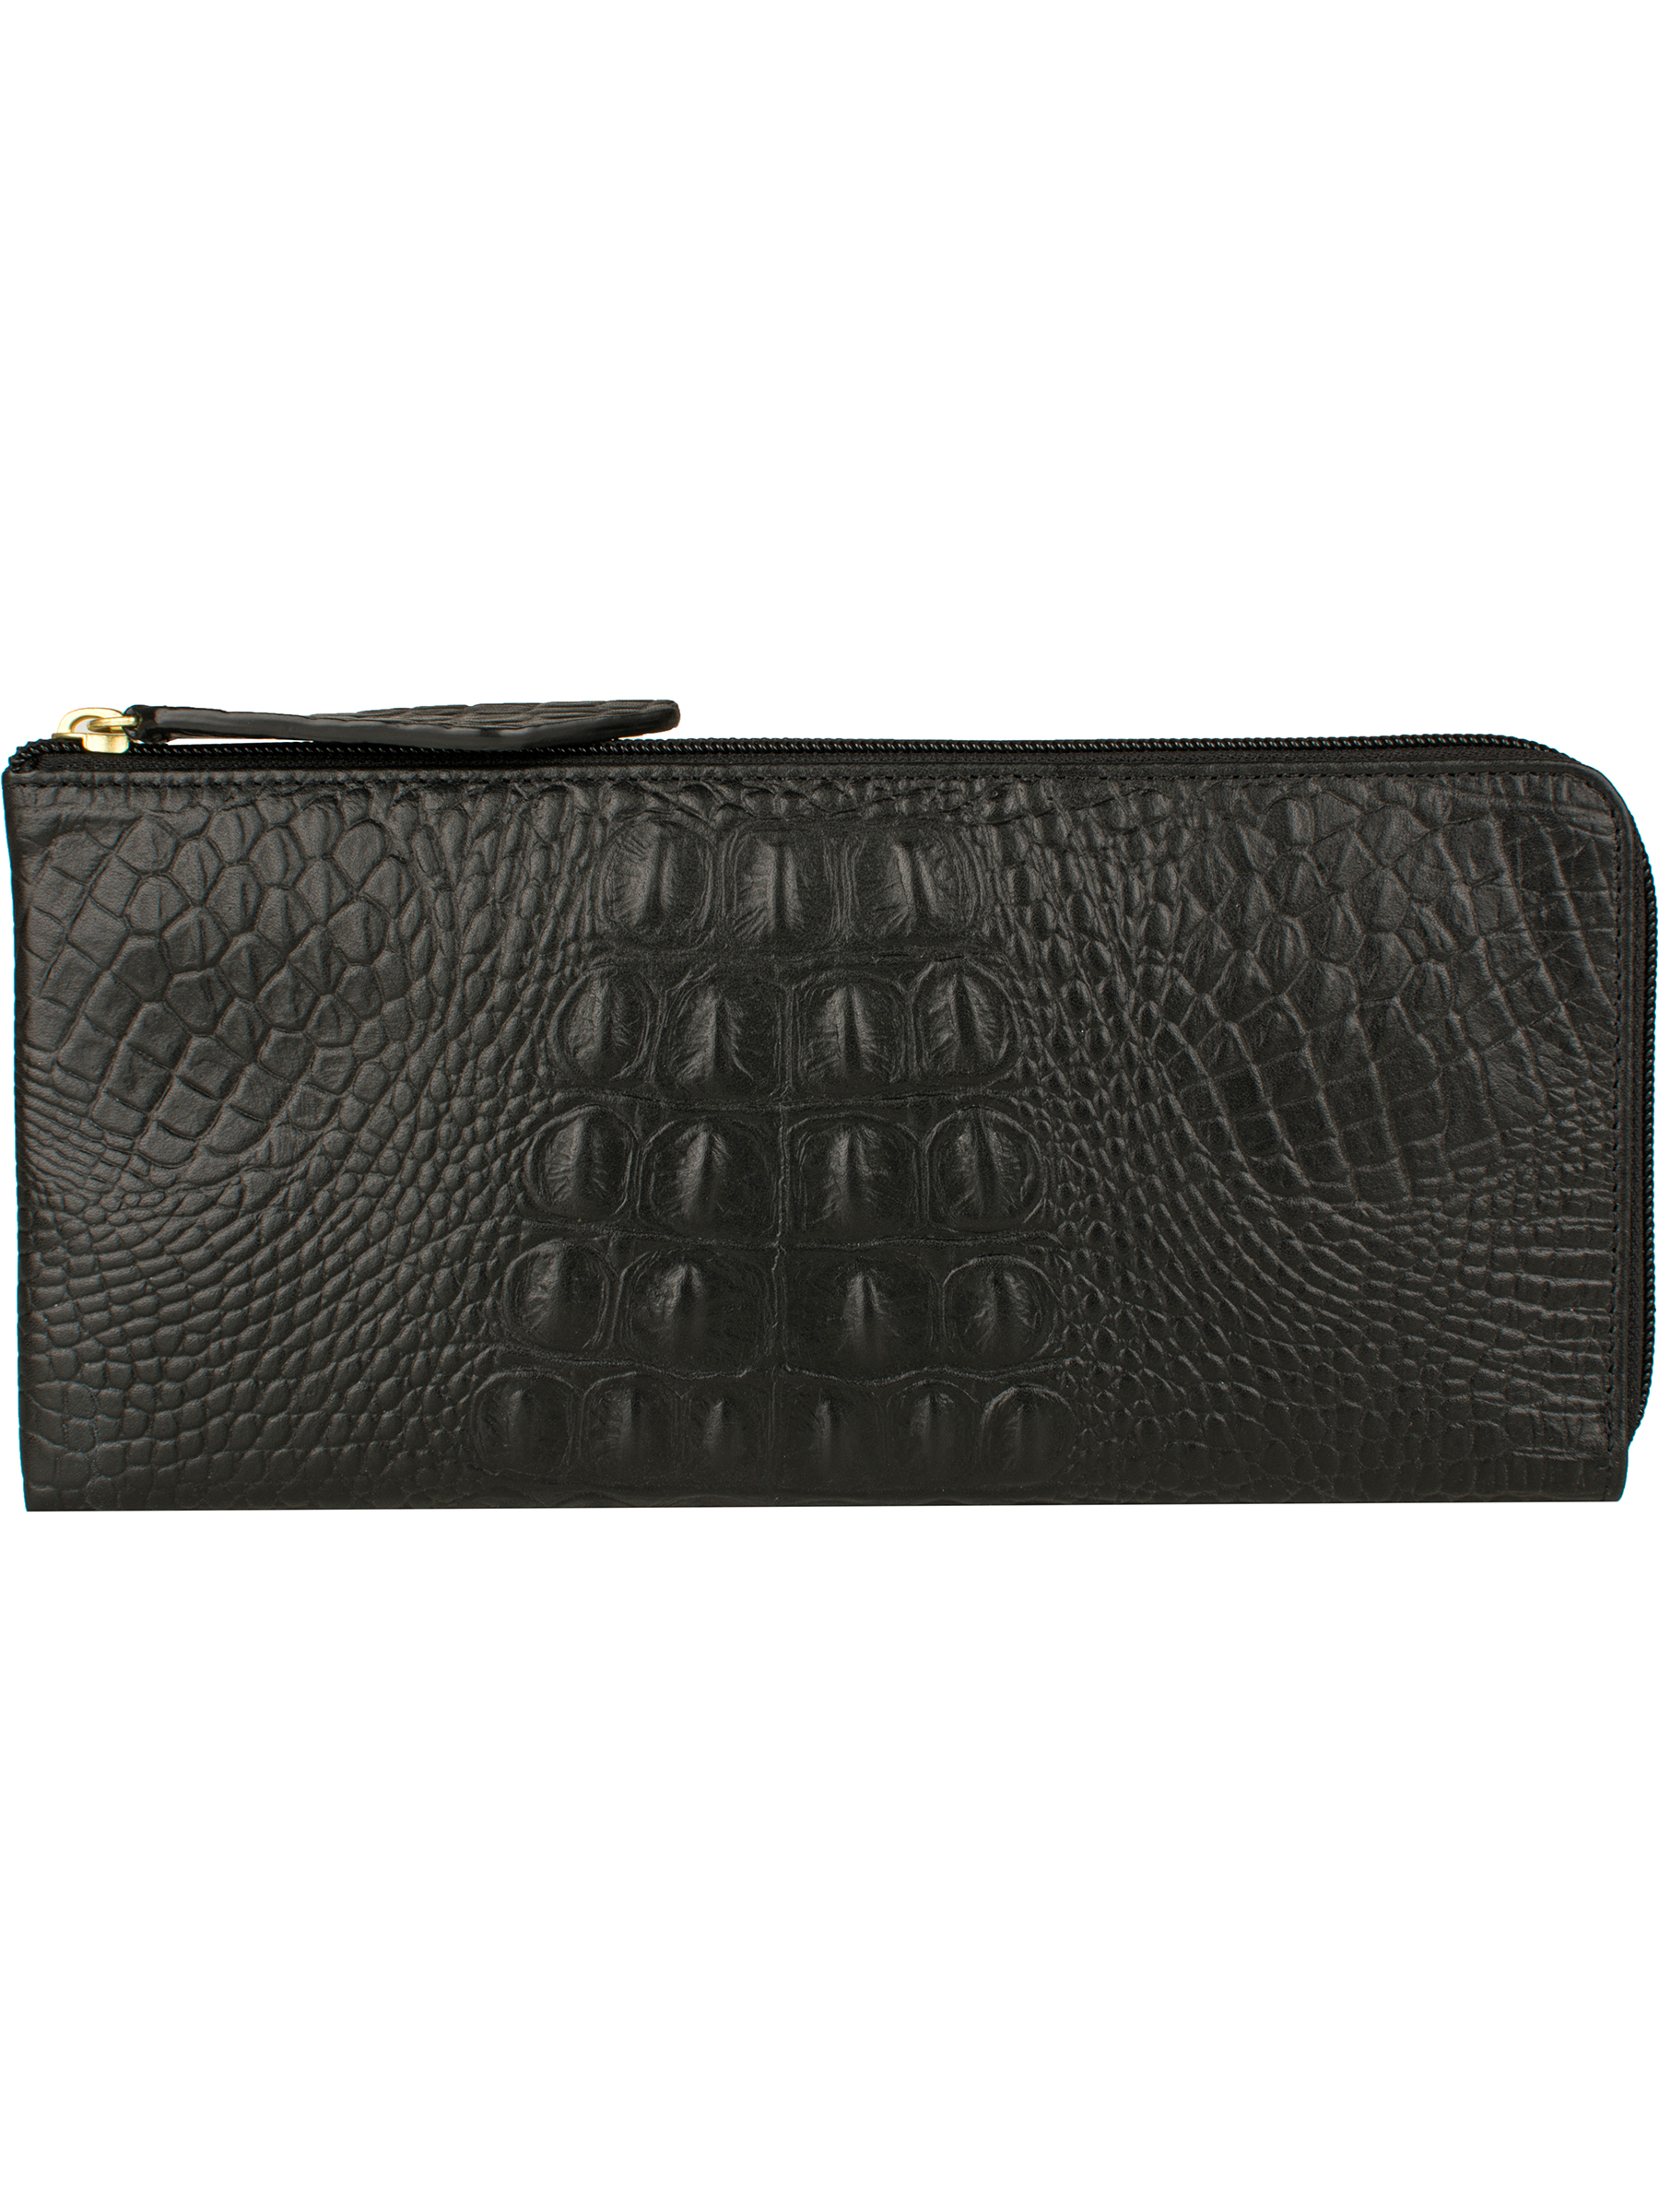 Embossed croco leather wallet